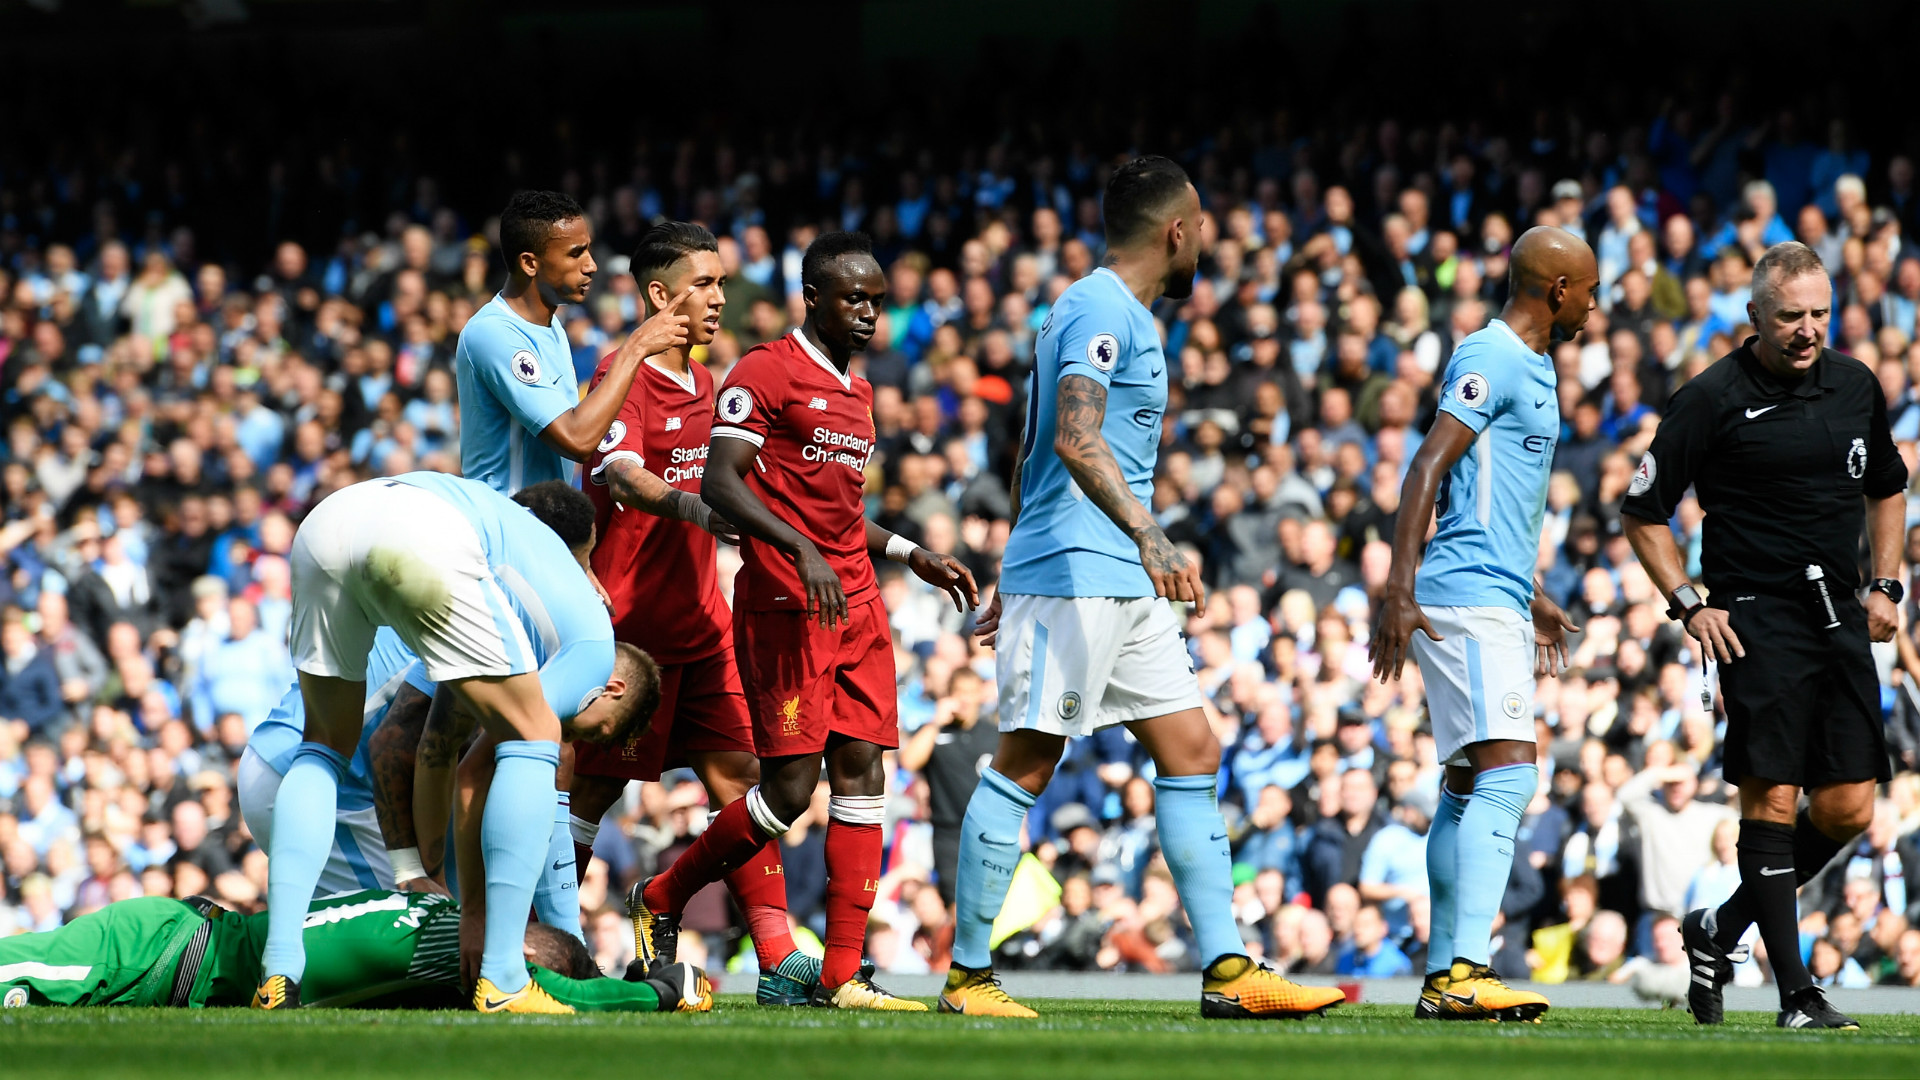 City Liverpool Mane red